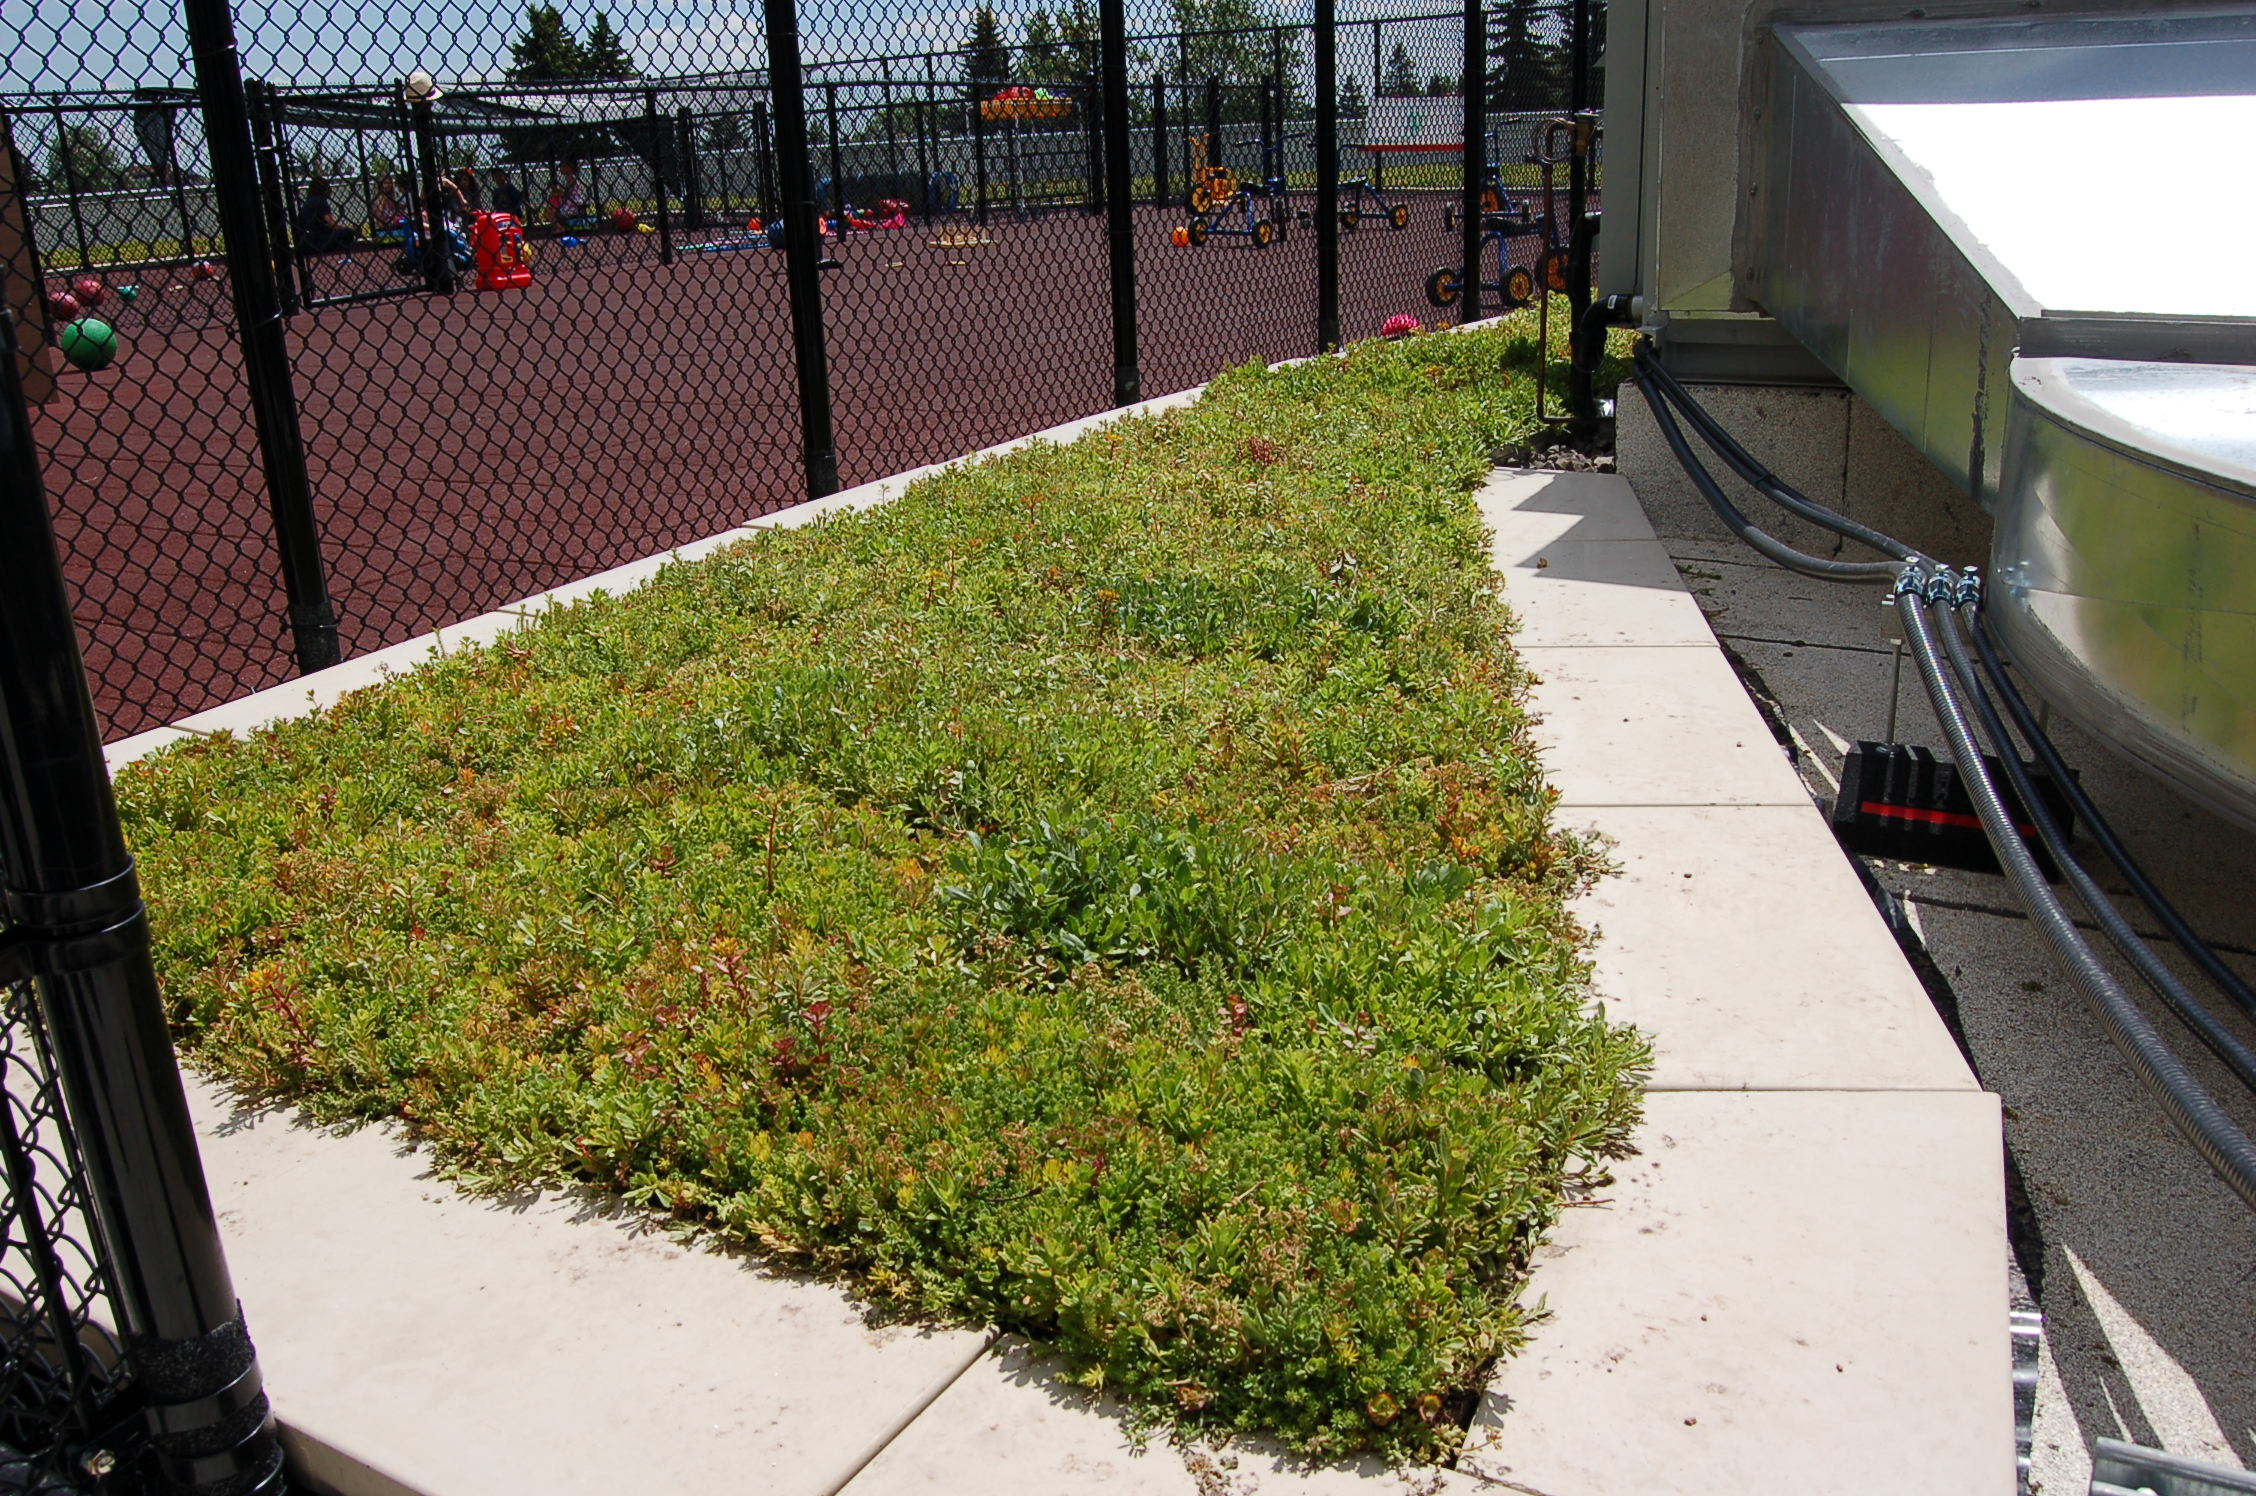 Green Roof surrounded by outdoor playground of Daycare